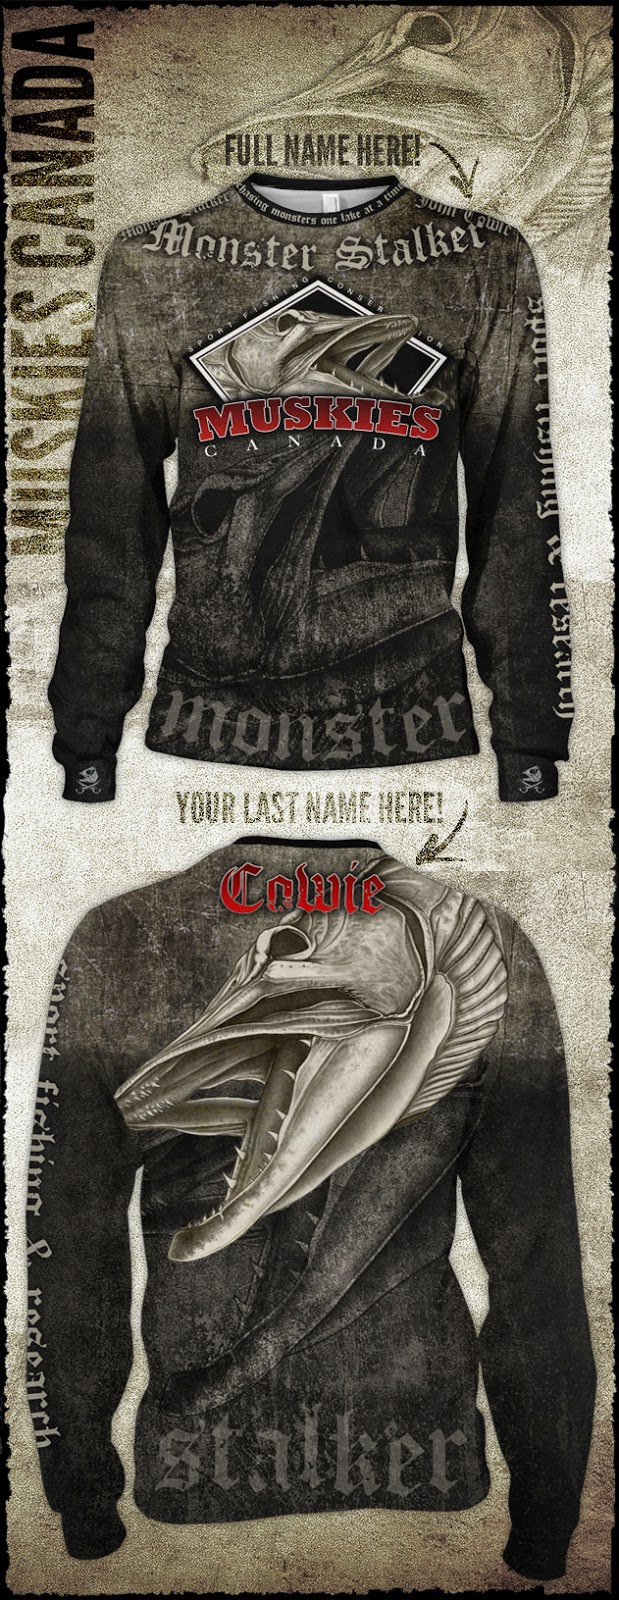 http://fishbumoutfitters.com/store/products/exclusive-muskies-canada-jersey/